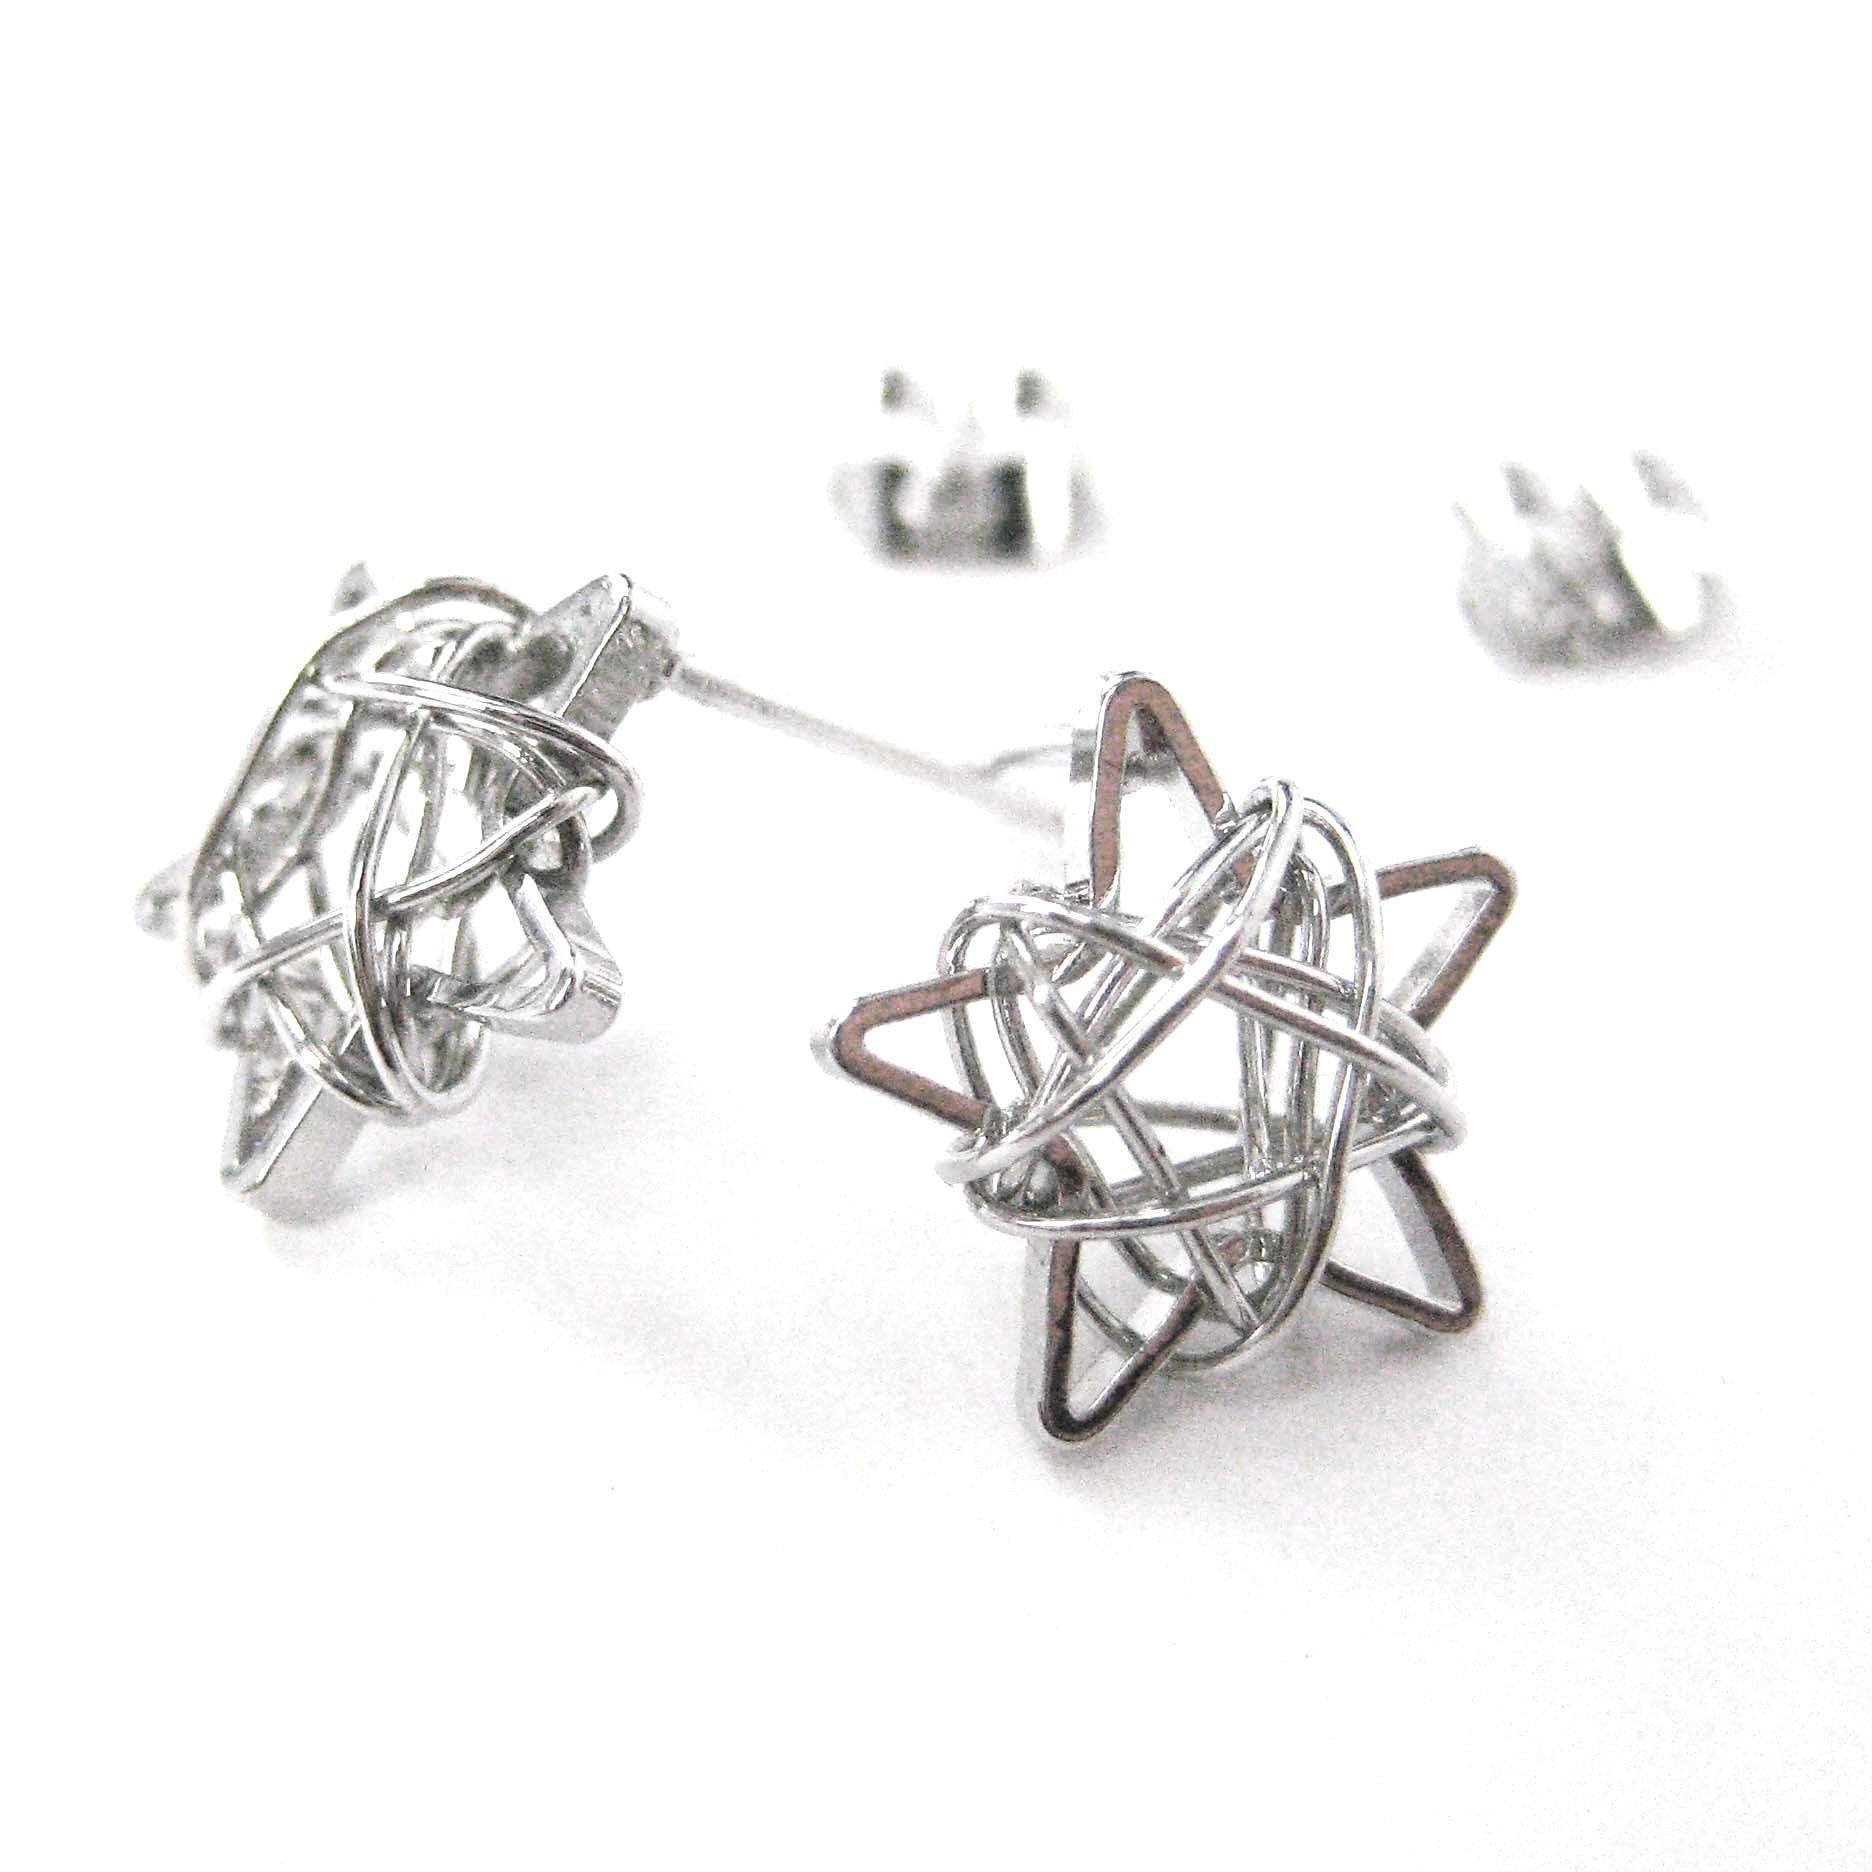 mini-3d-starry-night-star-stud-earrings-in-silver